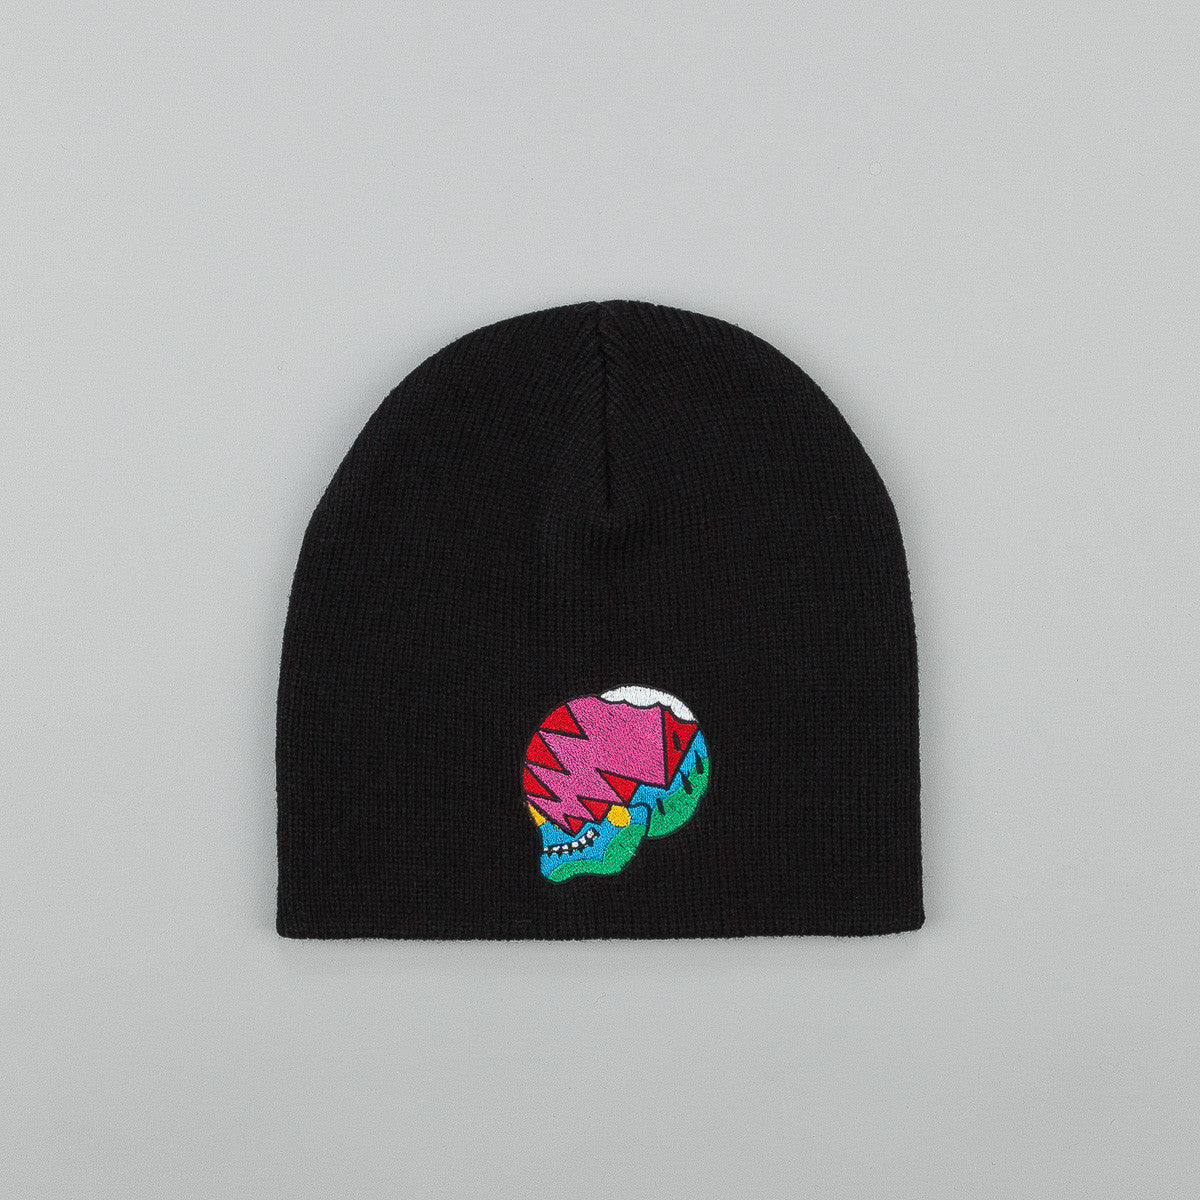 The Quiet Life Herndon Skull Beanie